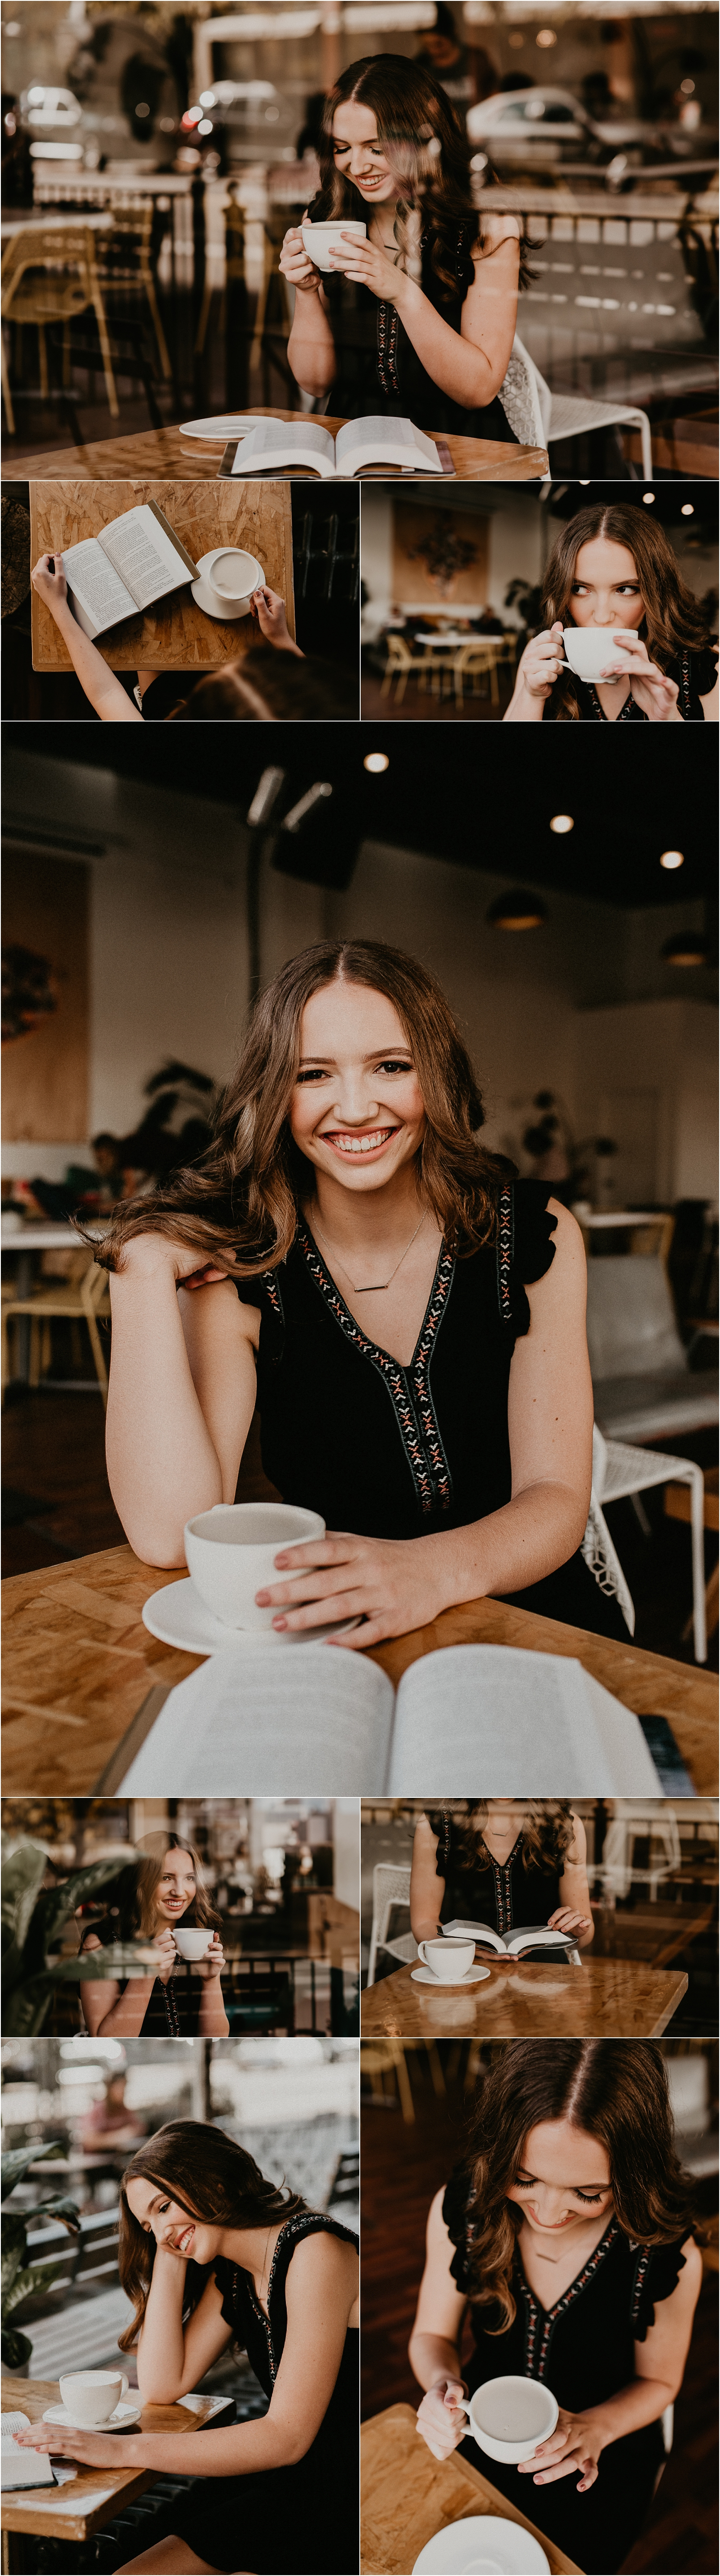 Boise Senior Photographer Makayla Madden Photography Downtown Boise The District Coffee House Boise Photography Coffee Shop Portraits Senior Posing Location Ideas Inspiration